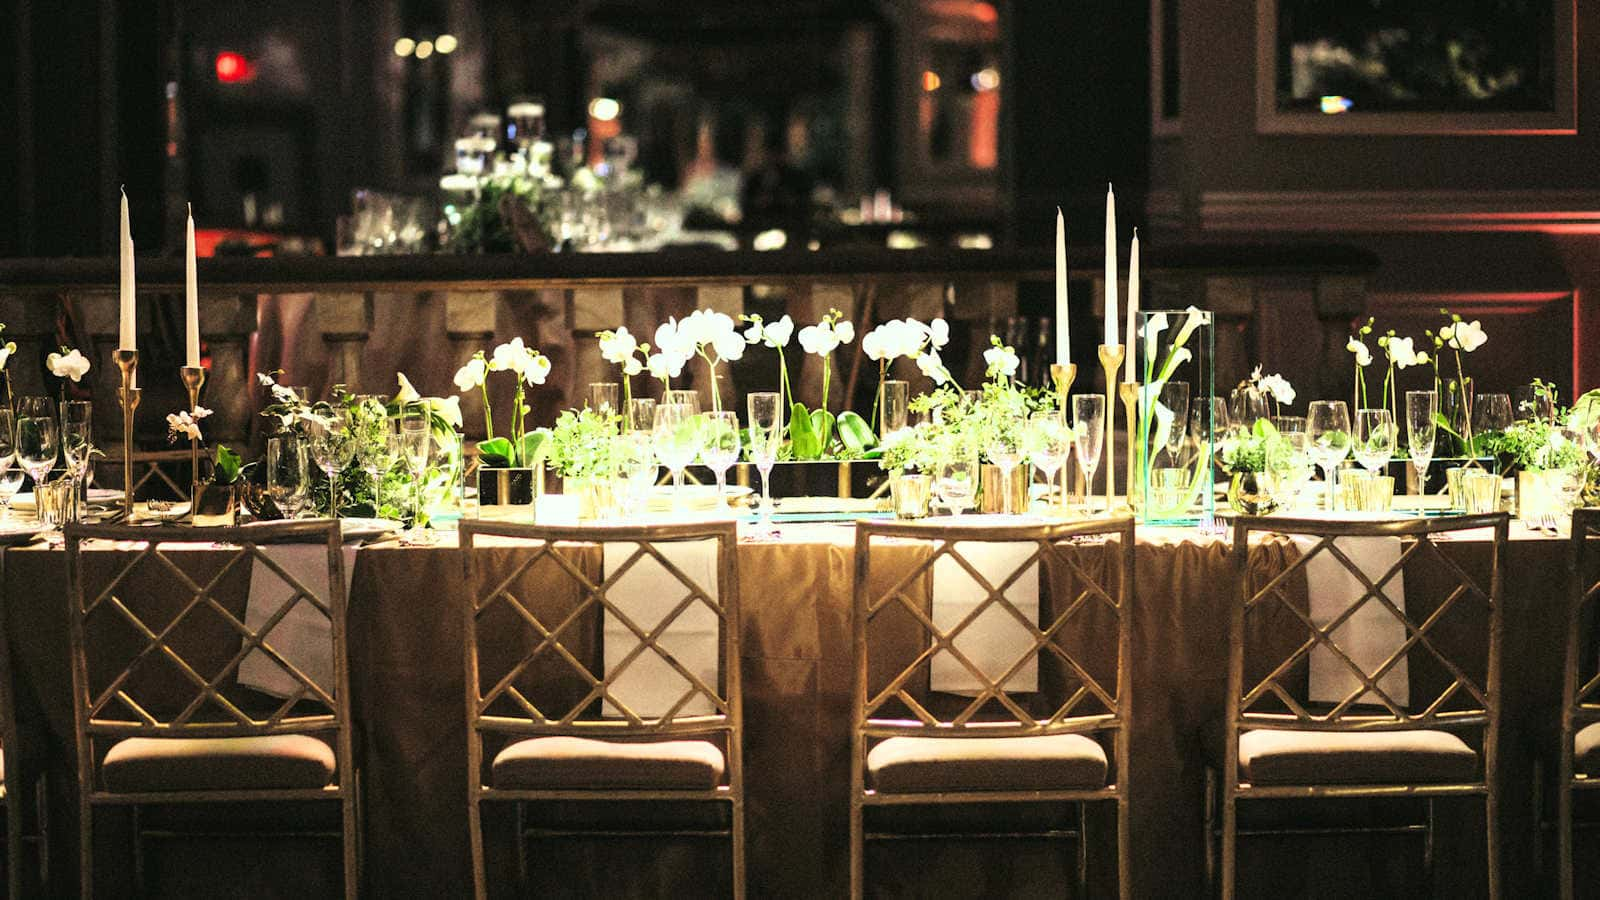 Ultimo Catering and Events of Claremont